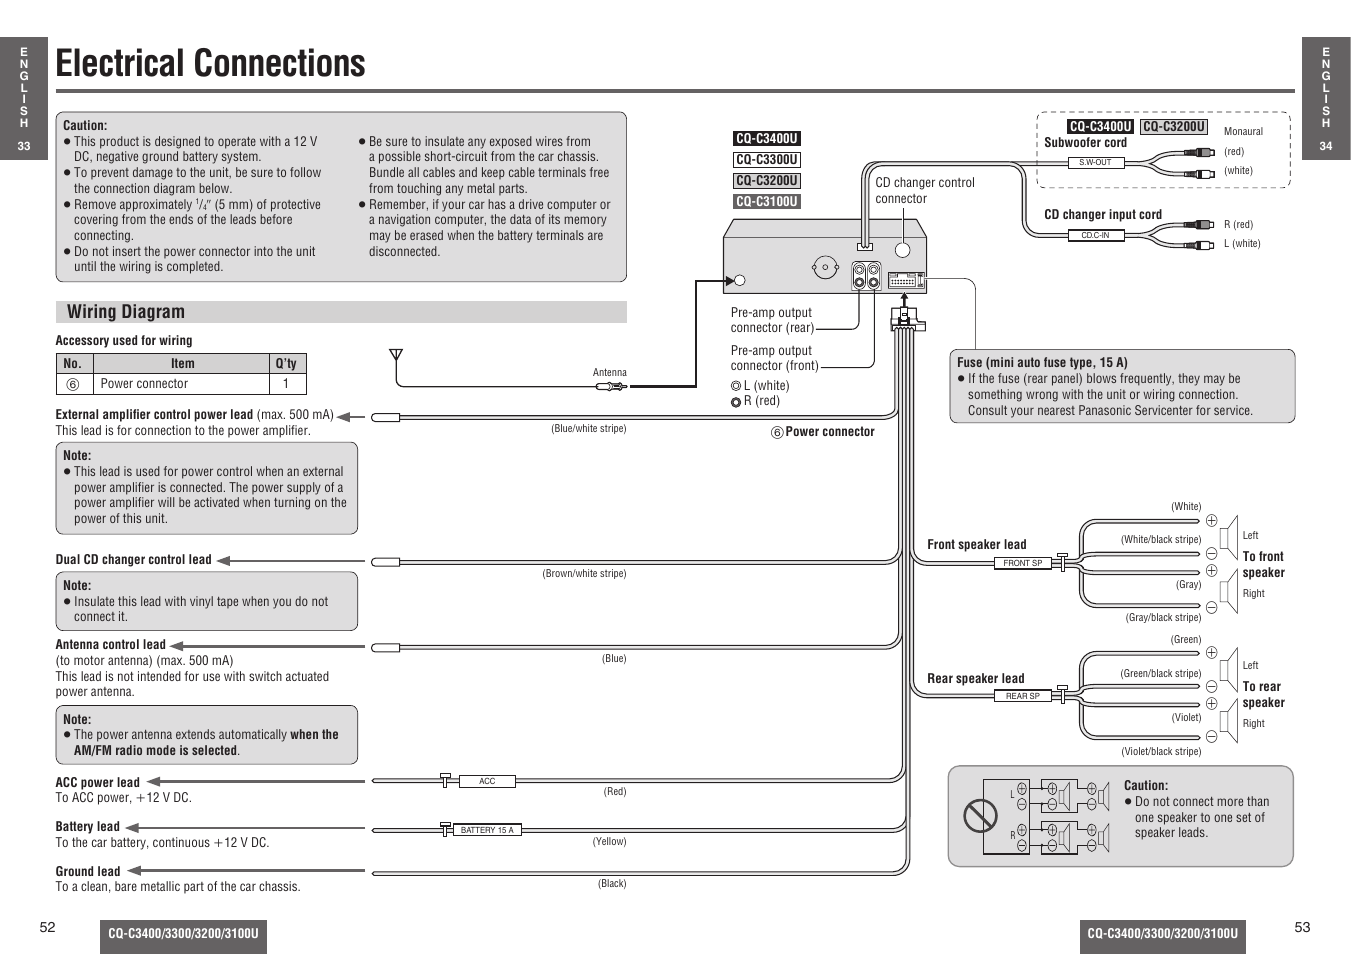 Electrical connections, Wiring diagram | Panasonic C3100U User Manual |  Page 21 / 24